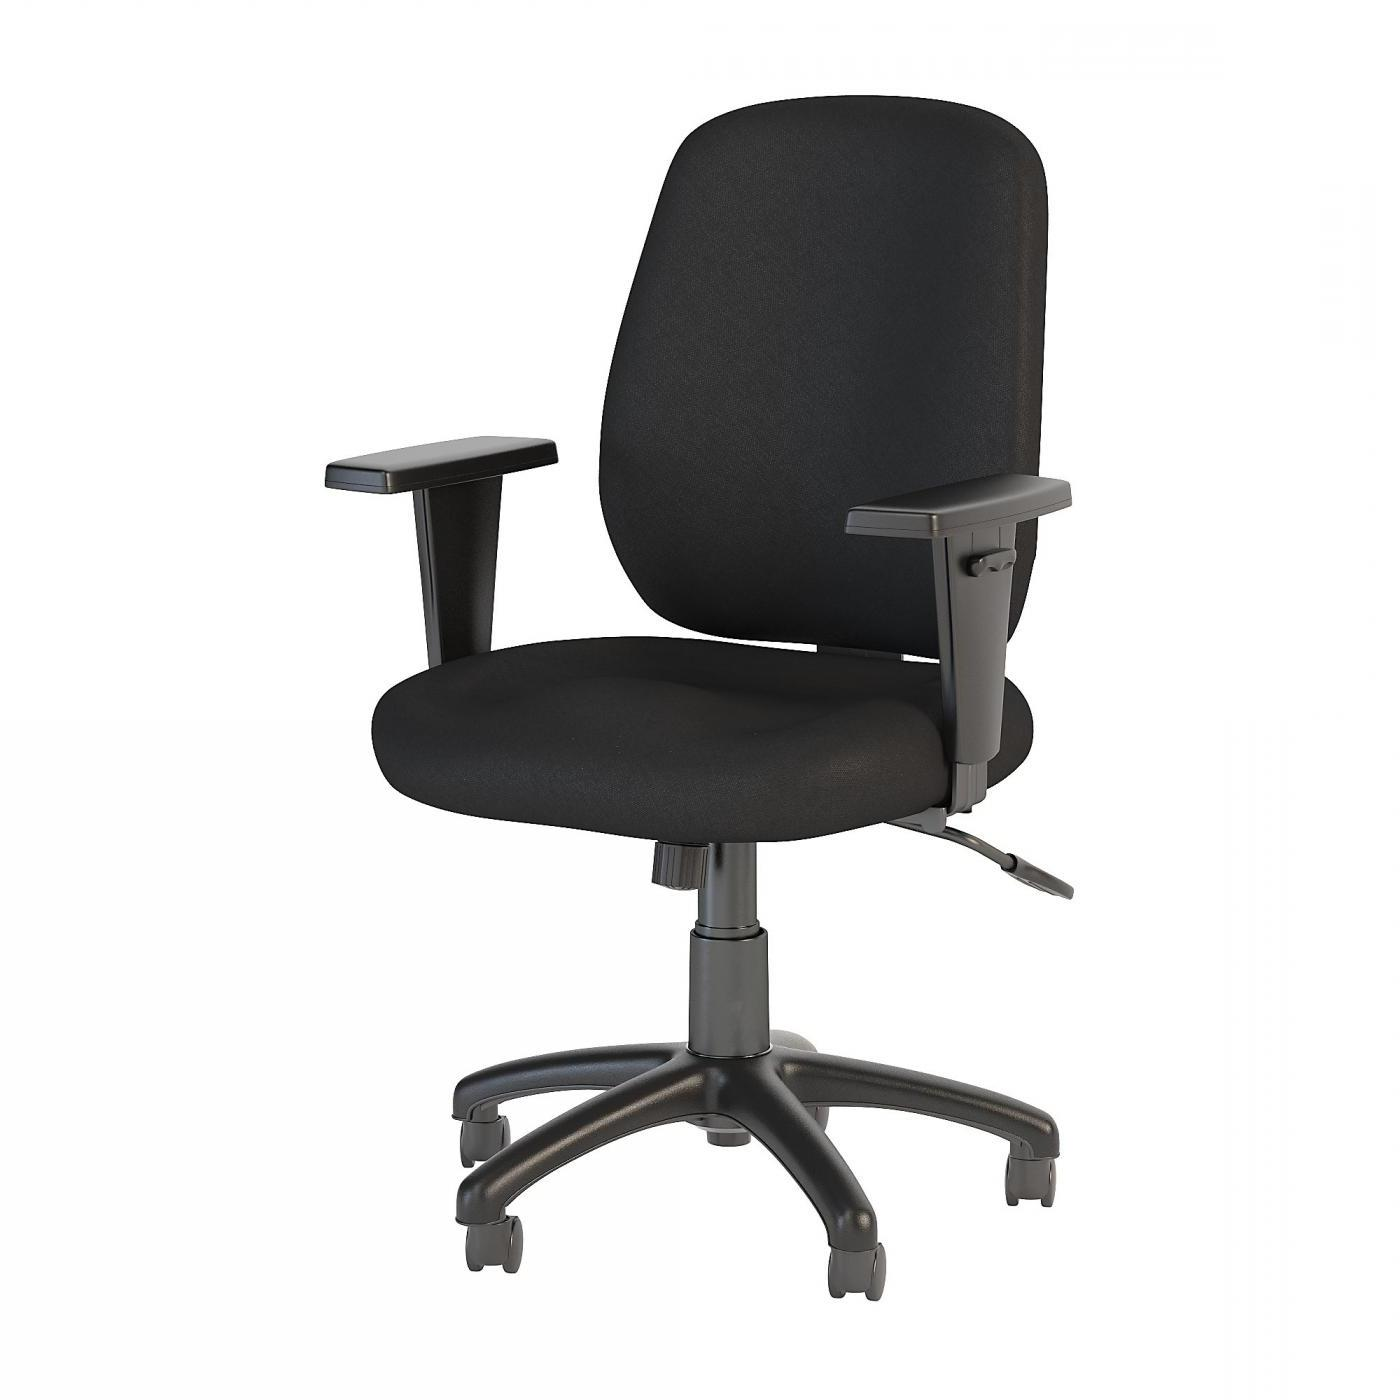 BUSH BUSINESS FURNITURE PROSPER MID BACK TASK CHAIR. FREE SHIPPING.